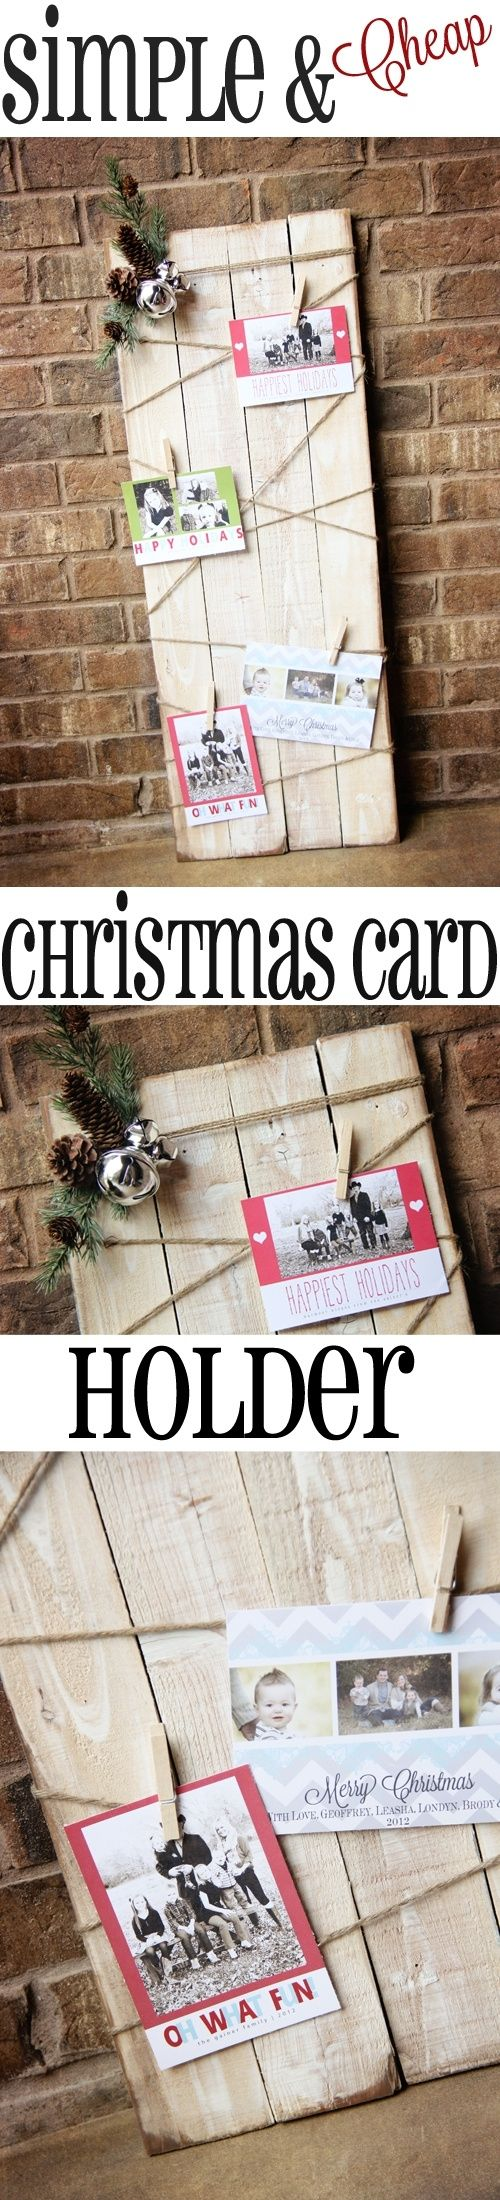 diy wood pallet christmas card display - Pallet Christmas Decoration Ideas